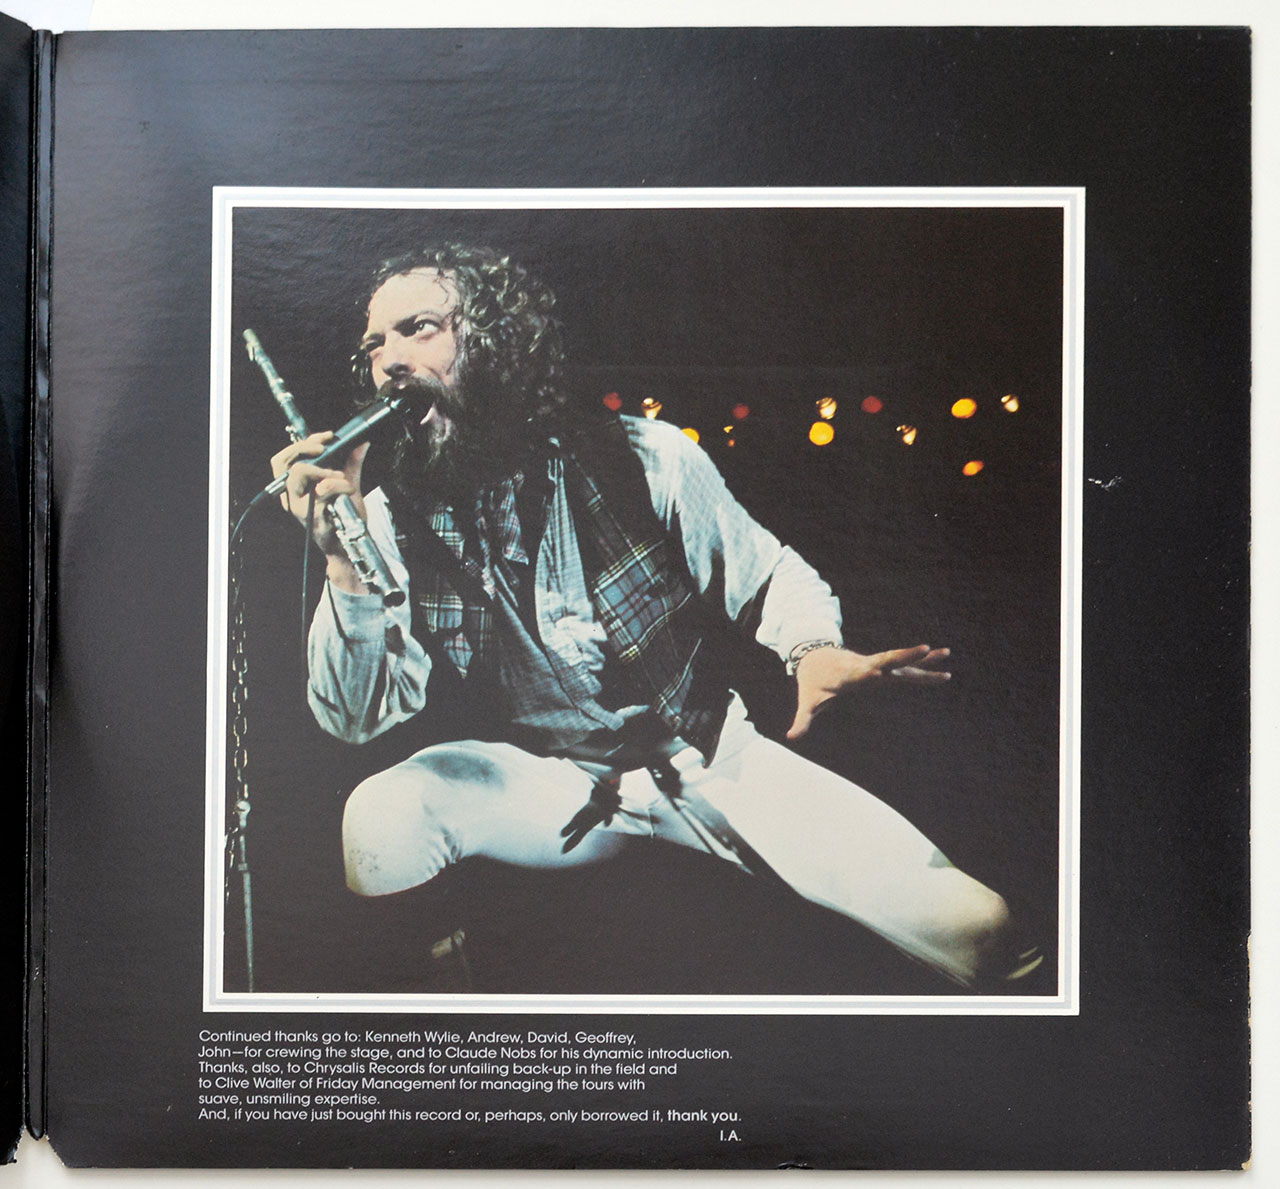 A0684 JETHRO TULL Live - Bursting Out 2LP